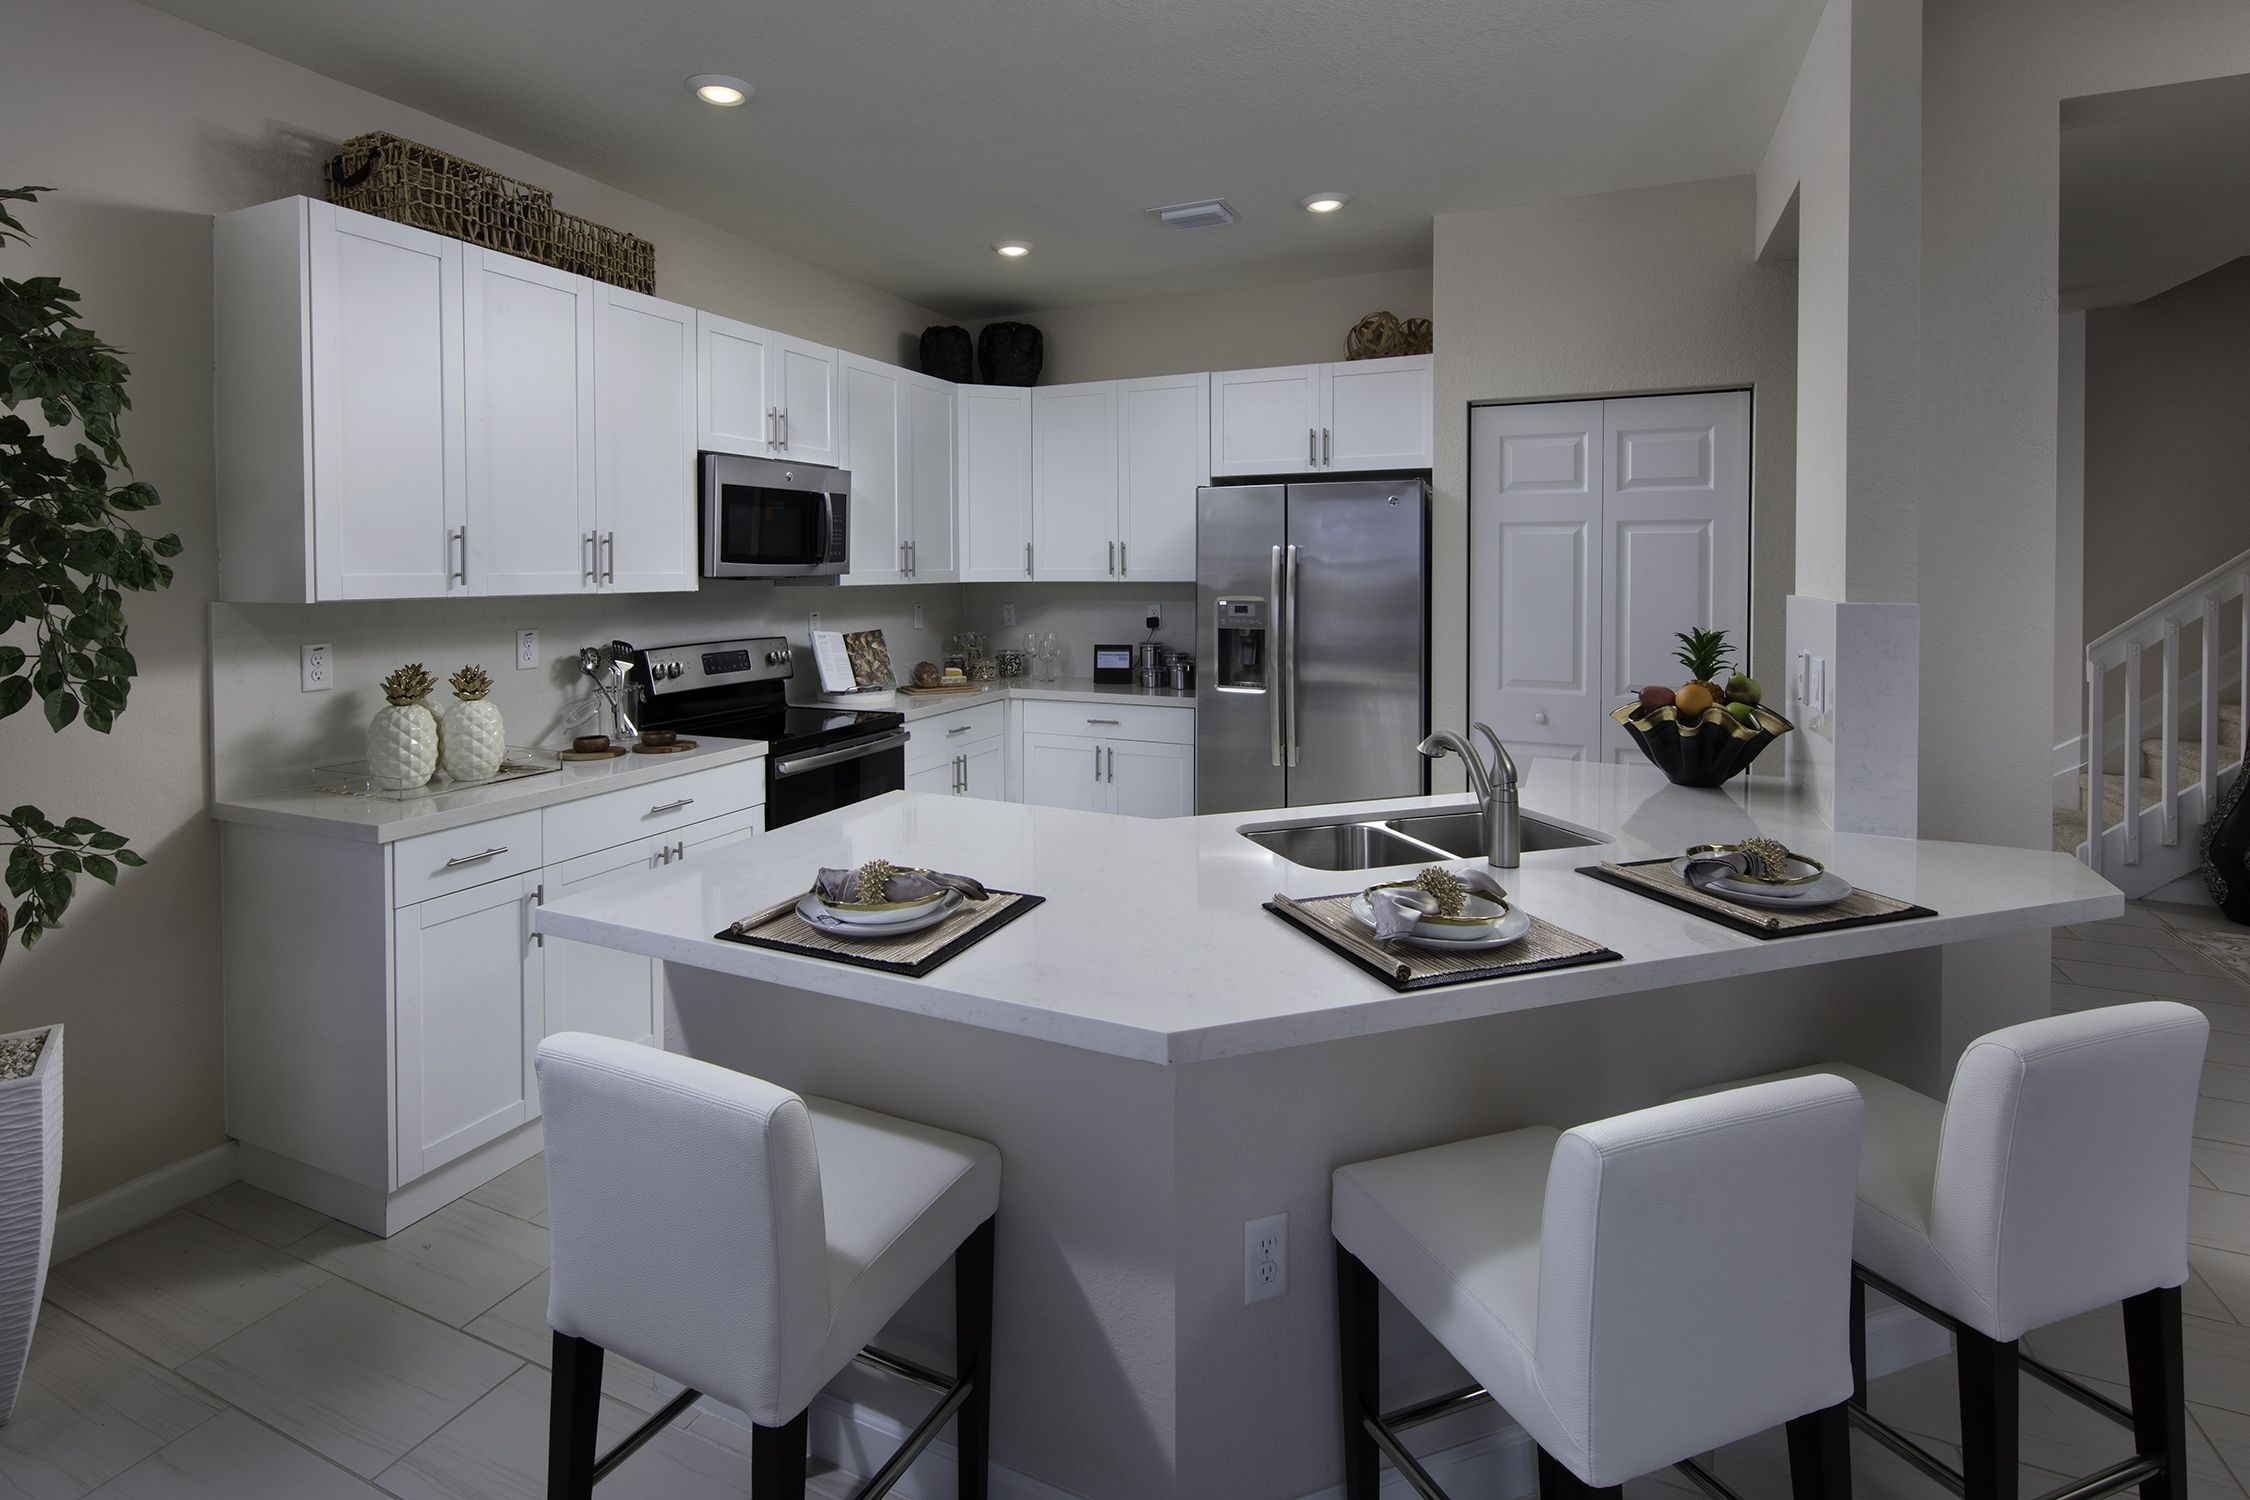 This Spacious Kitchen With Brand New Appliances Is Perfect For Cooking Up A Holiday Feast Aquabe Outdoor Kitchen Cabinets Kitchen Design Rustic Kitchen Design